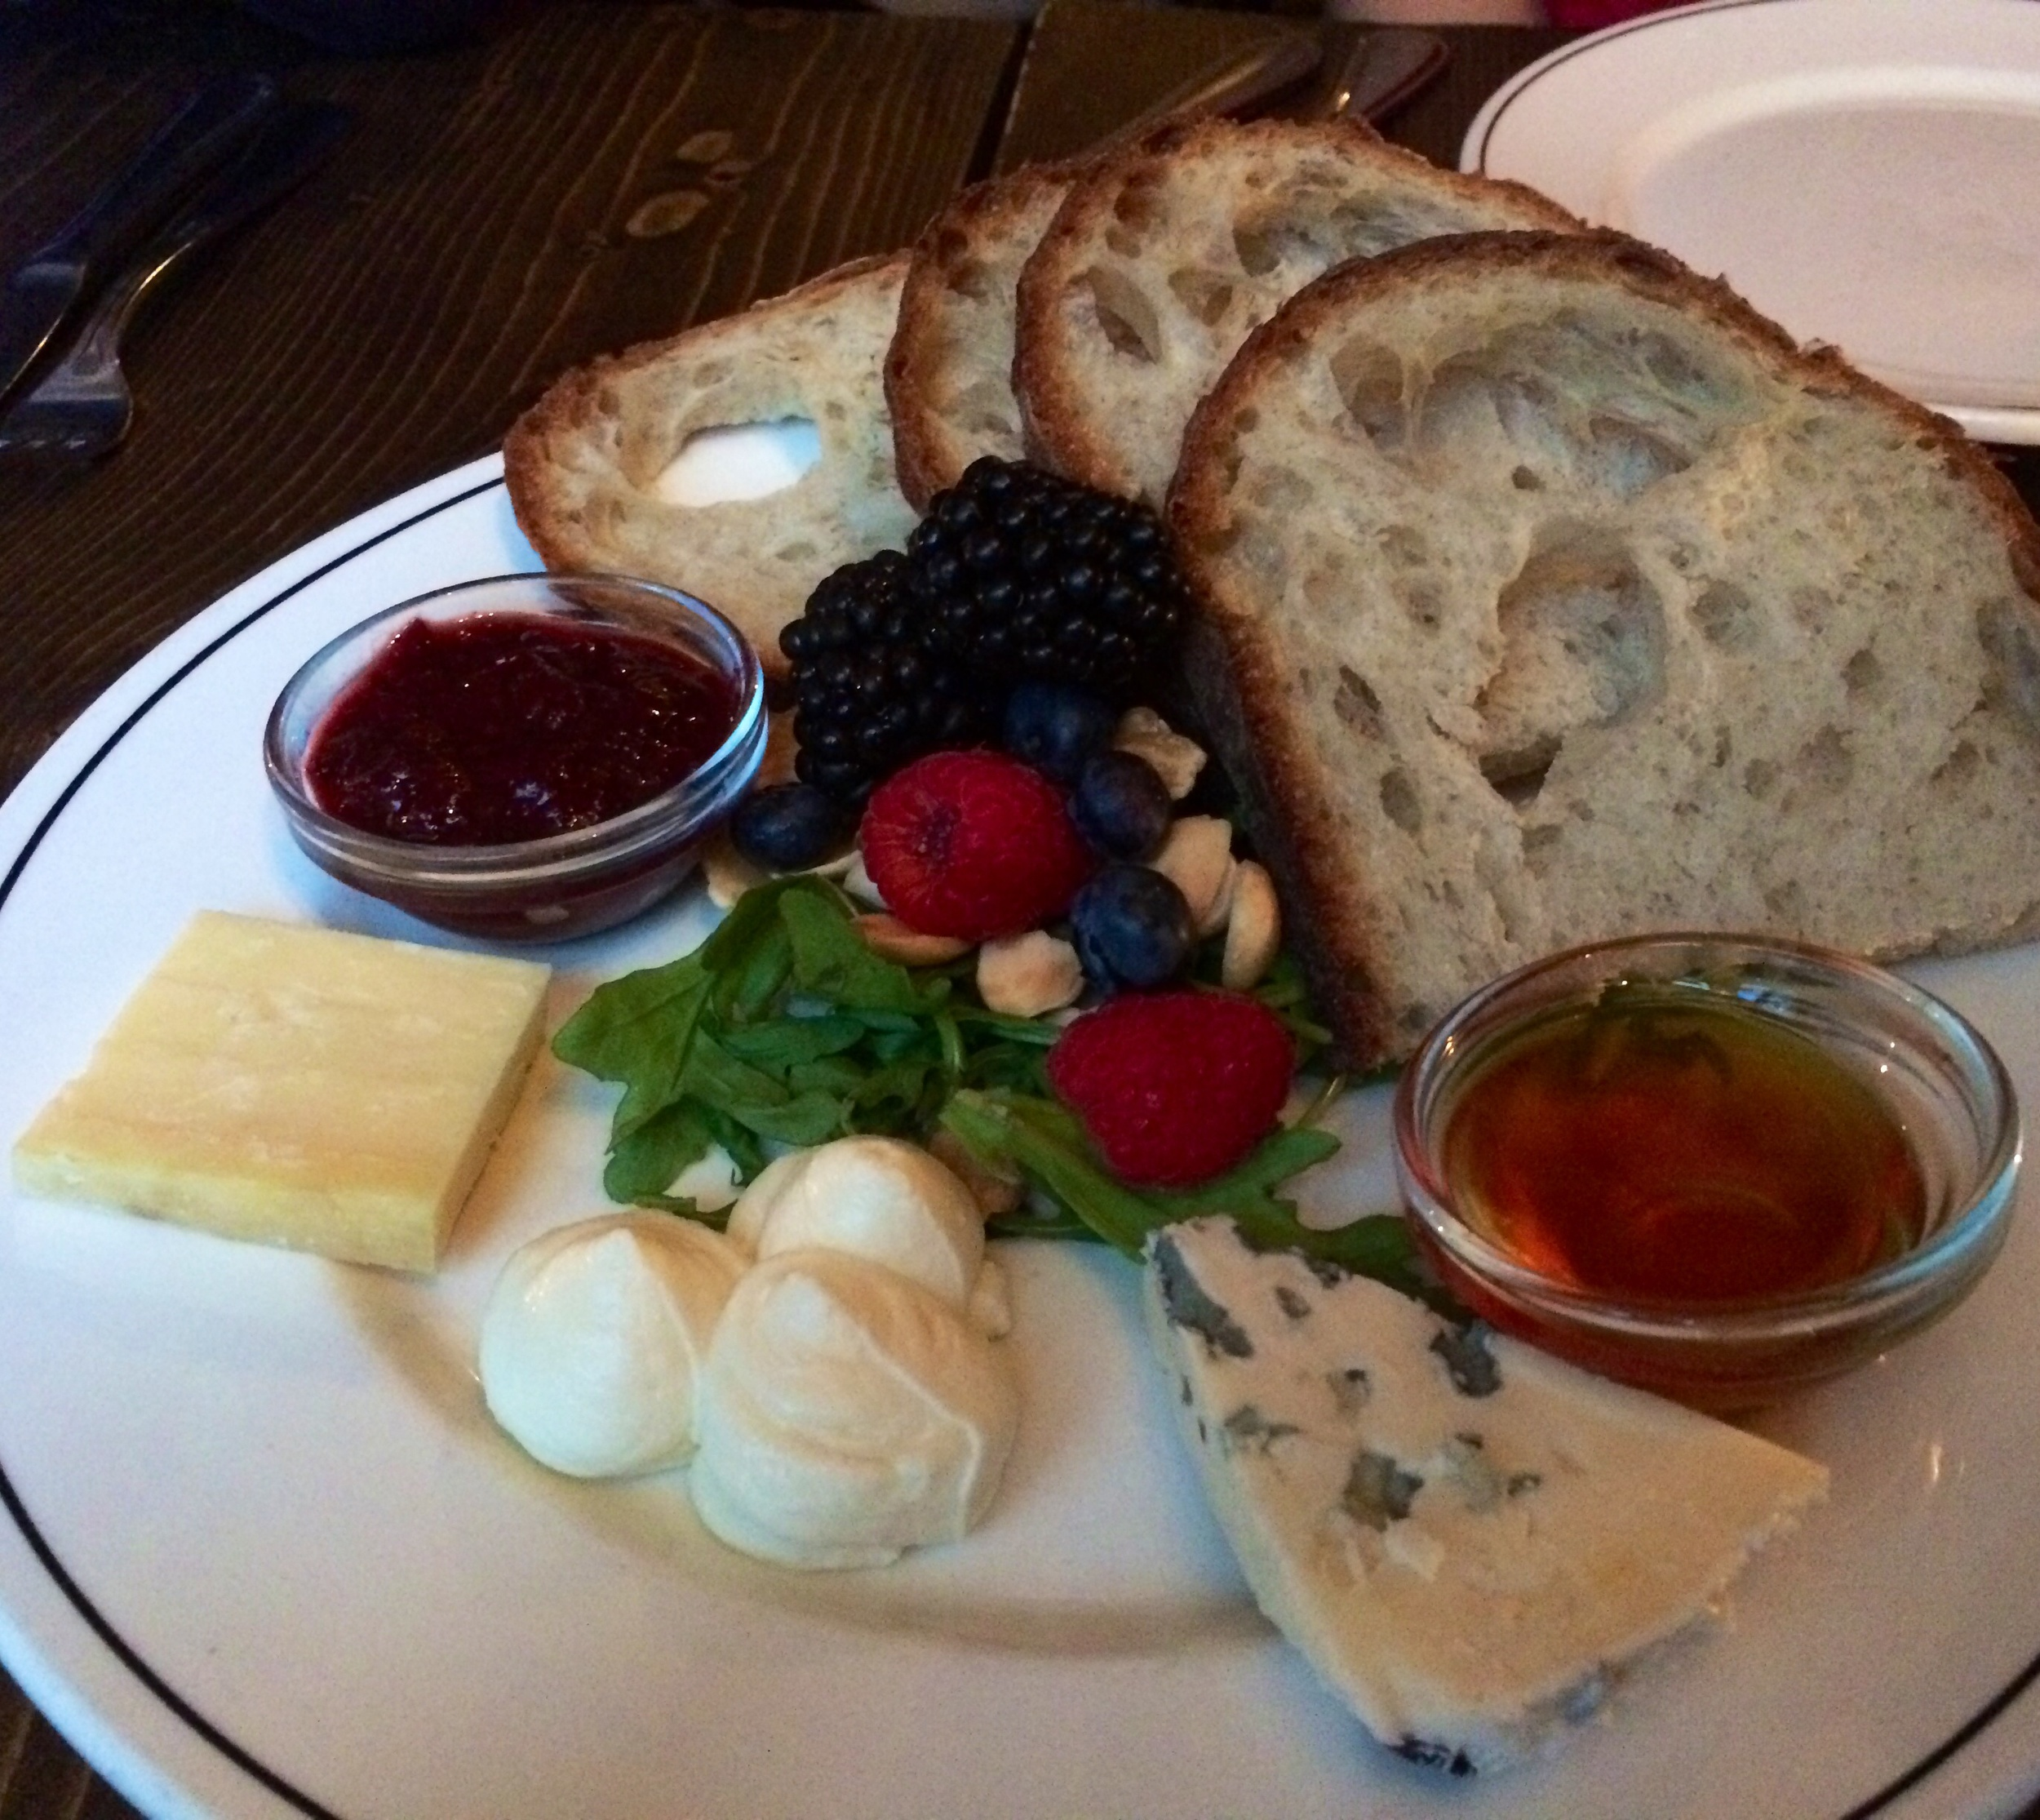 ASSORTED CHEESES, TOASTED MARCONA ALMONDS, LOCAL HONEY & PRESERVES, FRESH BREADS